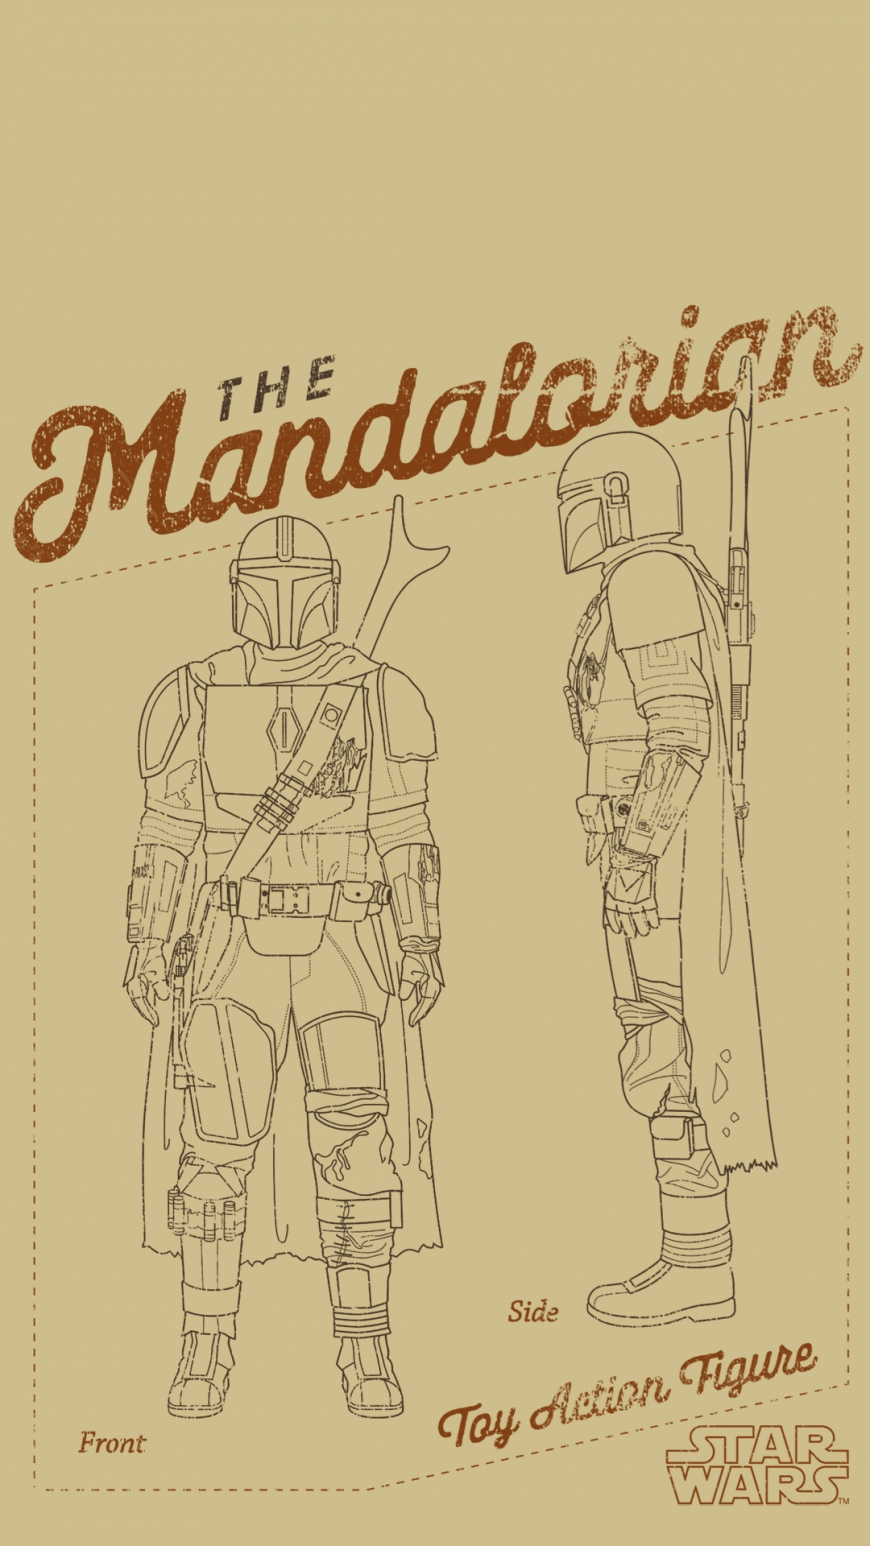 The Mandalorian HD phone wallpaper images